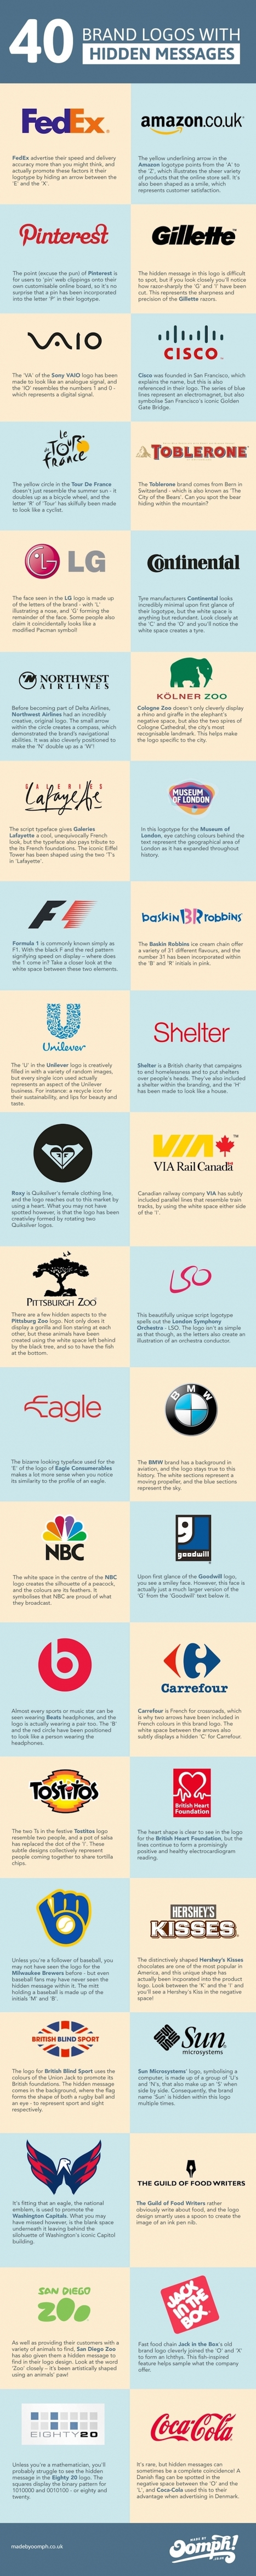 There Are Hidden Messages in These 40 Famous Logos: How Many Can You Find? [Infographic]   Meetings, Tourism and  Technology   Scoop.it